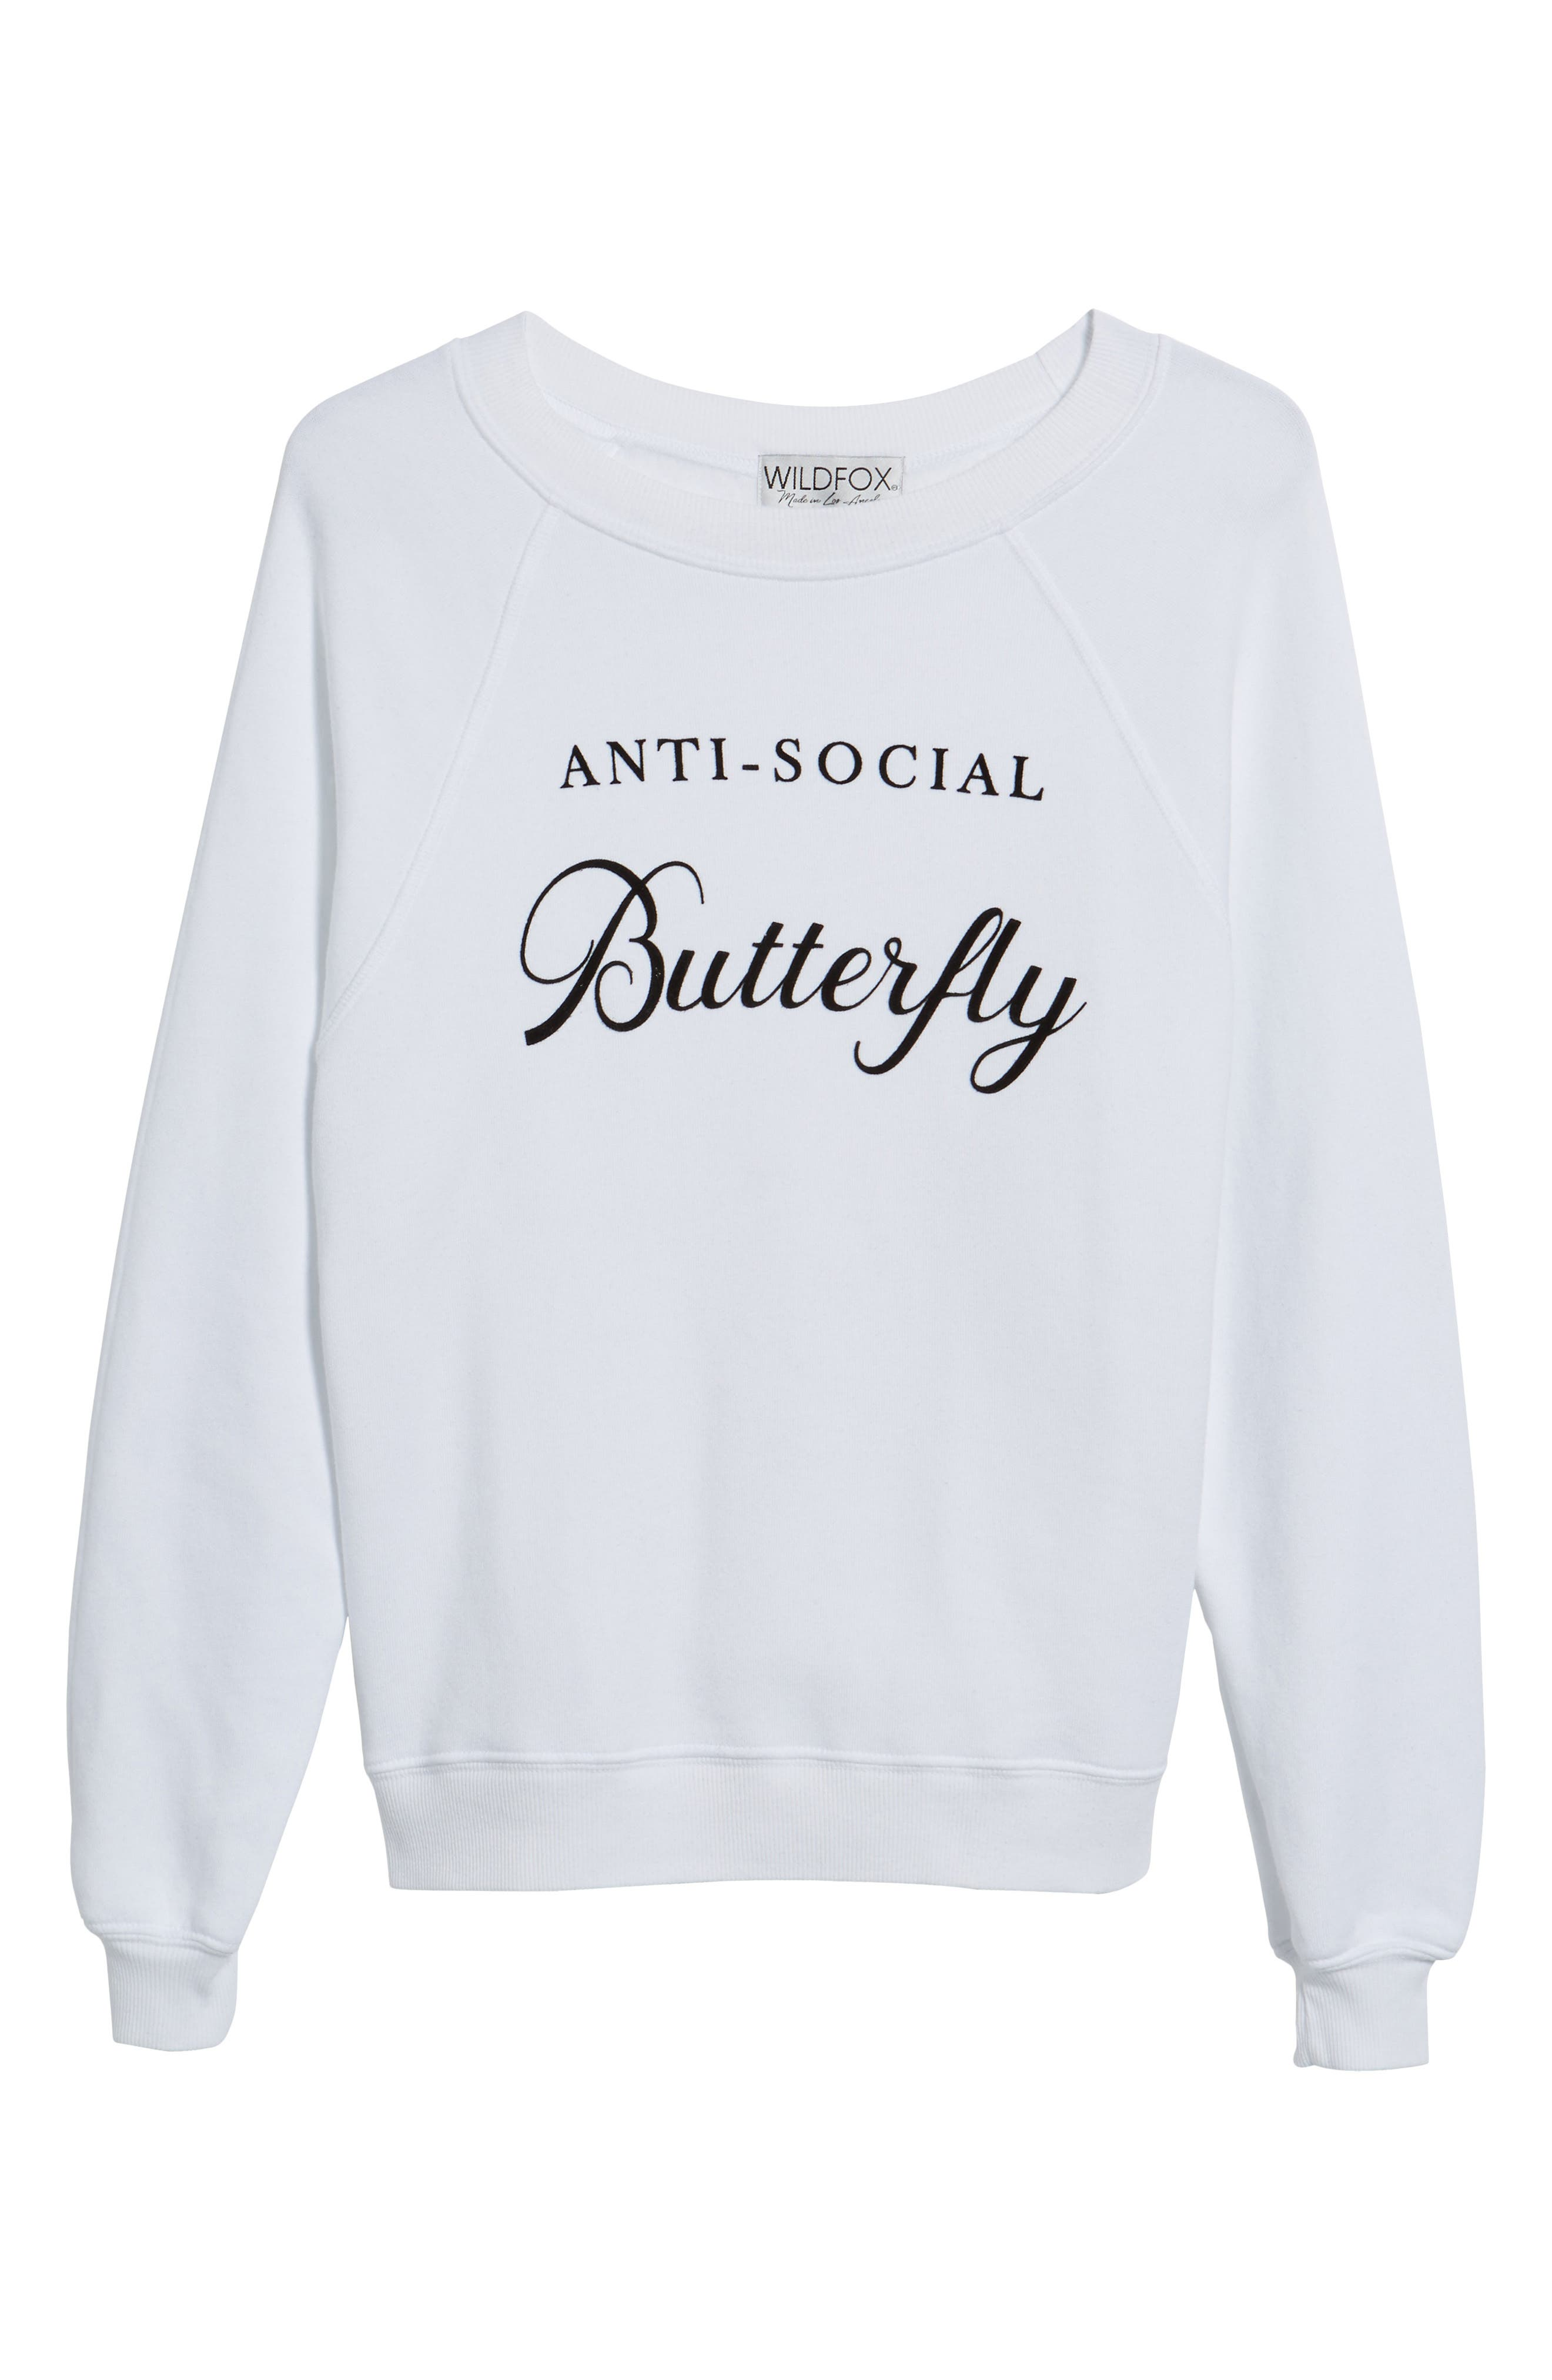 Anti-Social Butterfly Sweatshirt,                             Alternate thumbnail 6, color,                             100